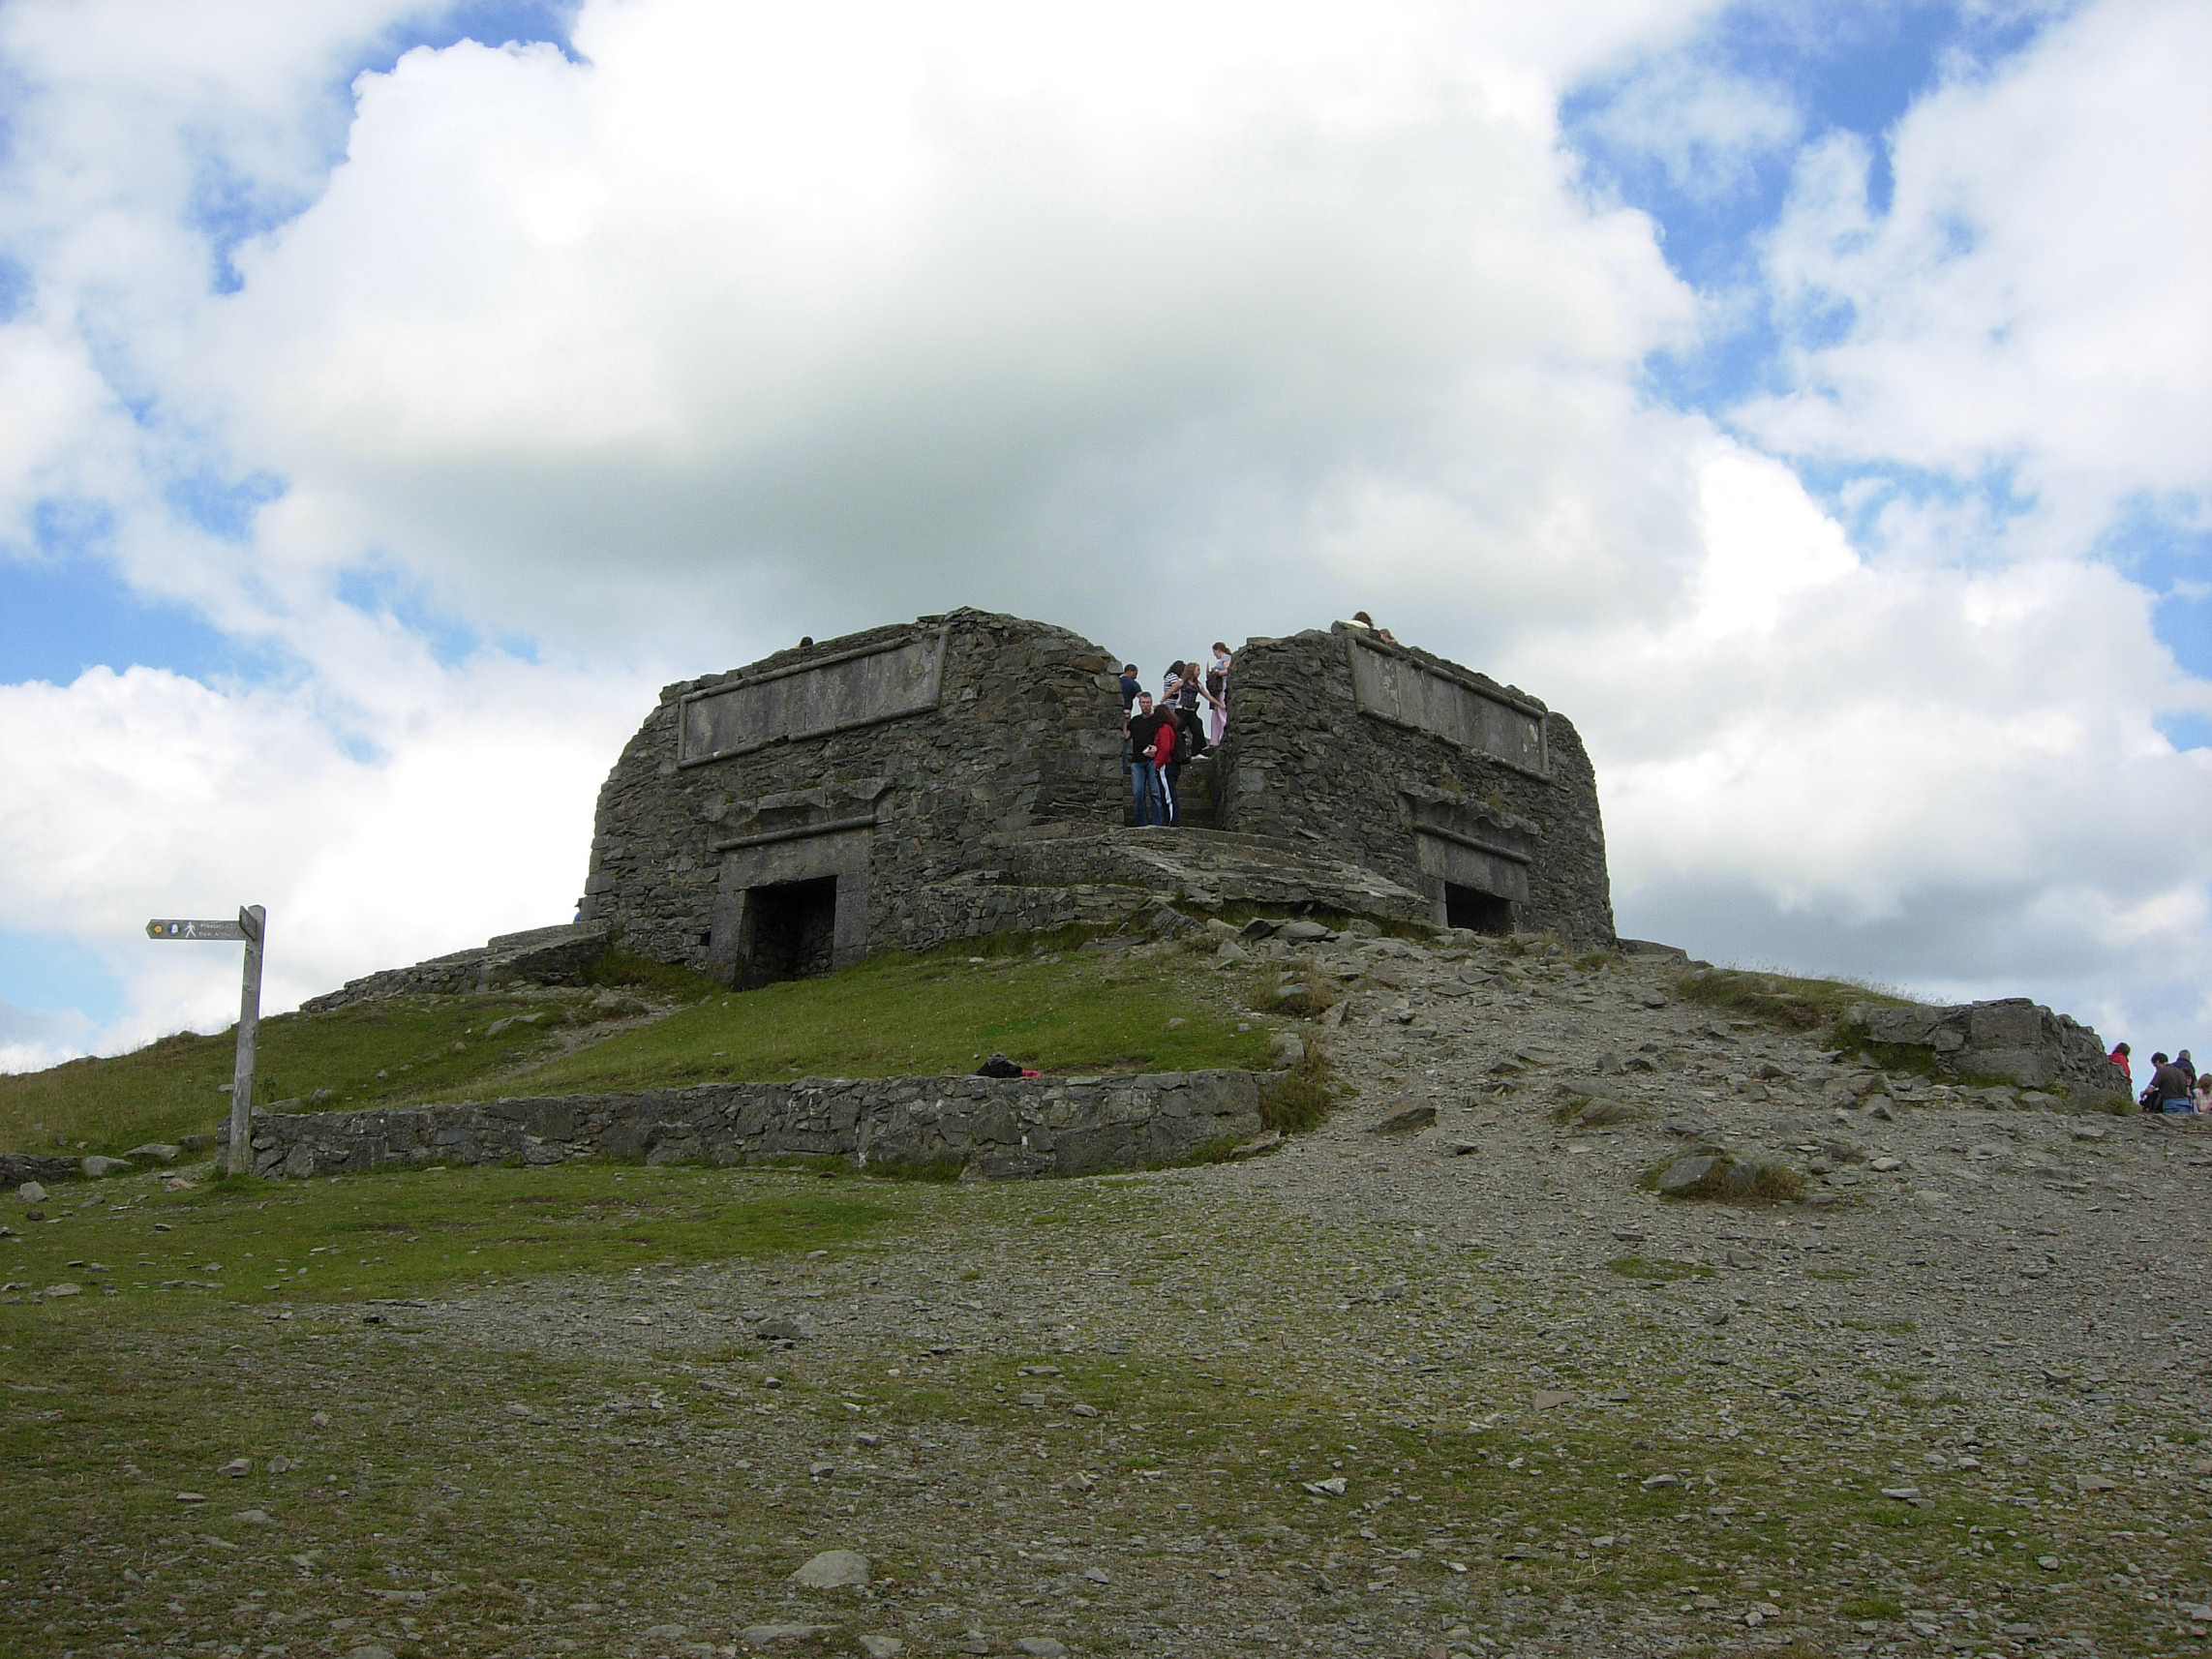 A picture of the Jubilee Tower on top of Moel Famau